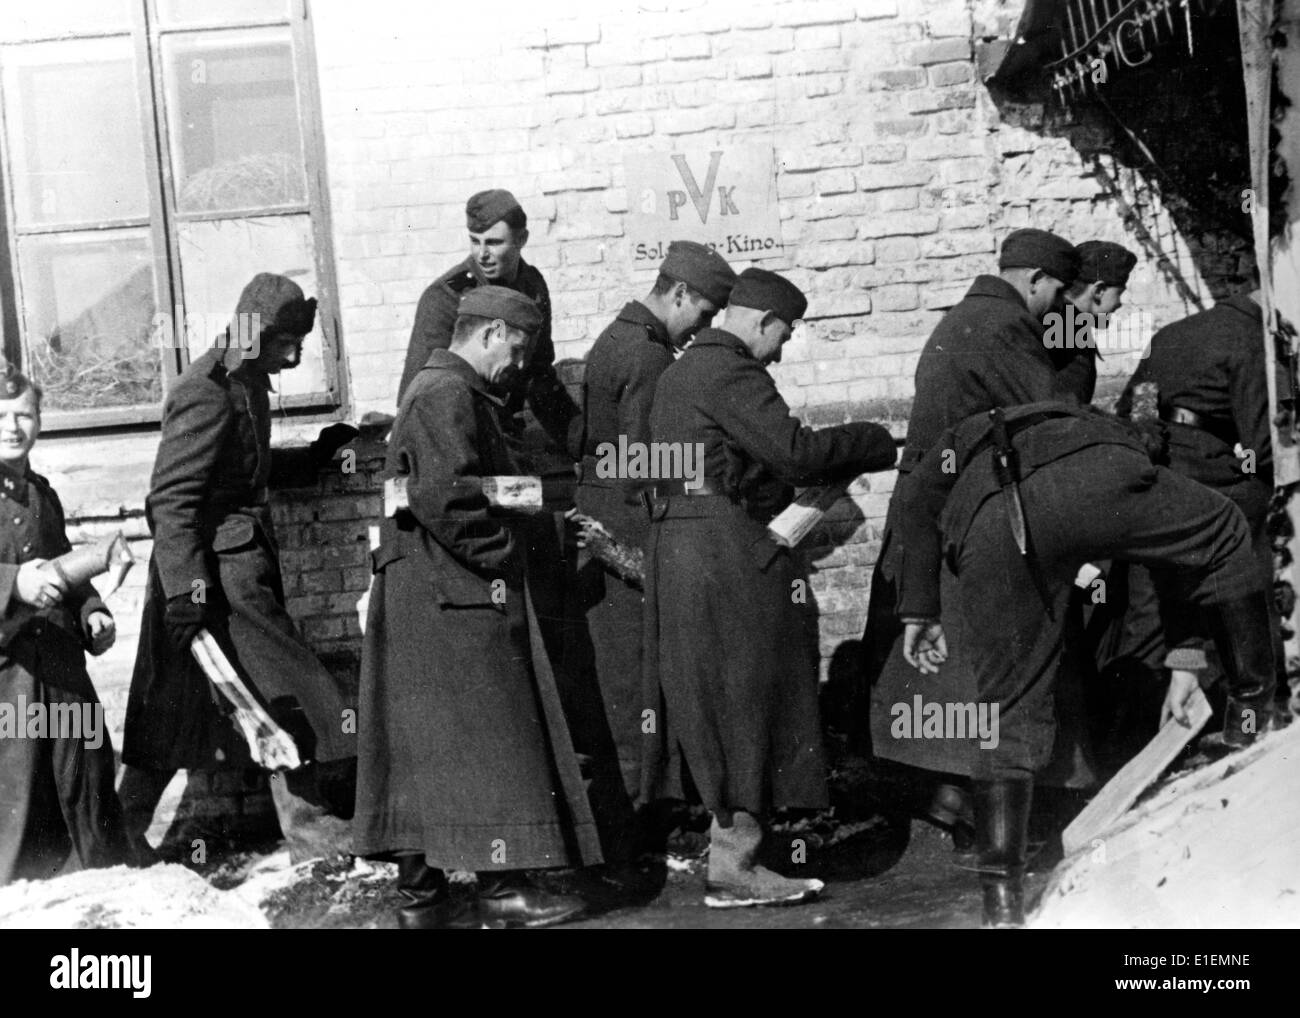 Soldiers queue in front of a front cinema at the Eastern Front, published 08 April 1942. Propaganda text! from Nazi Stock Photo